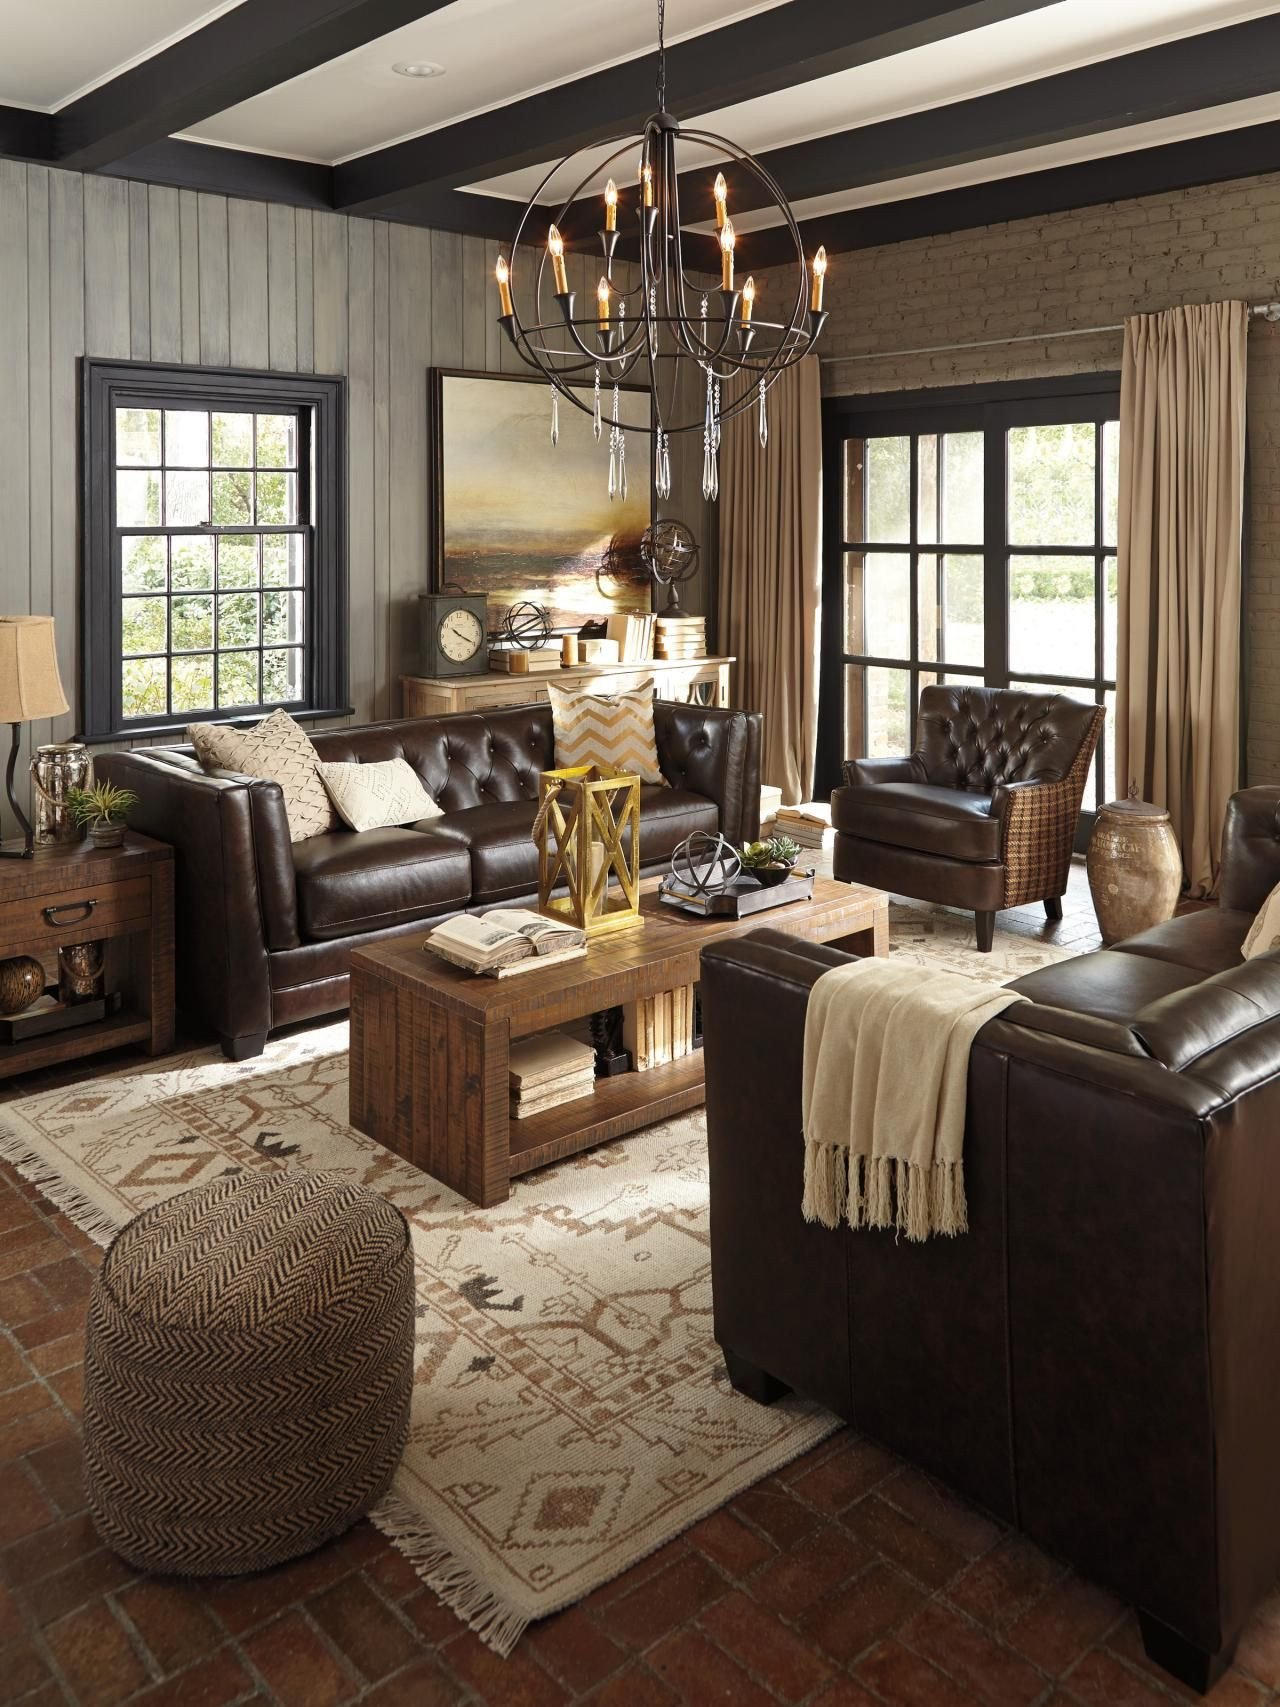 Brown Furniture Living Room Decor Dark Chocolate and Cream—such A Deliciously Rich Look